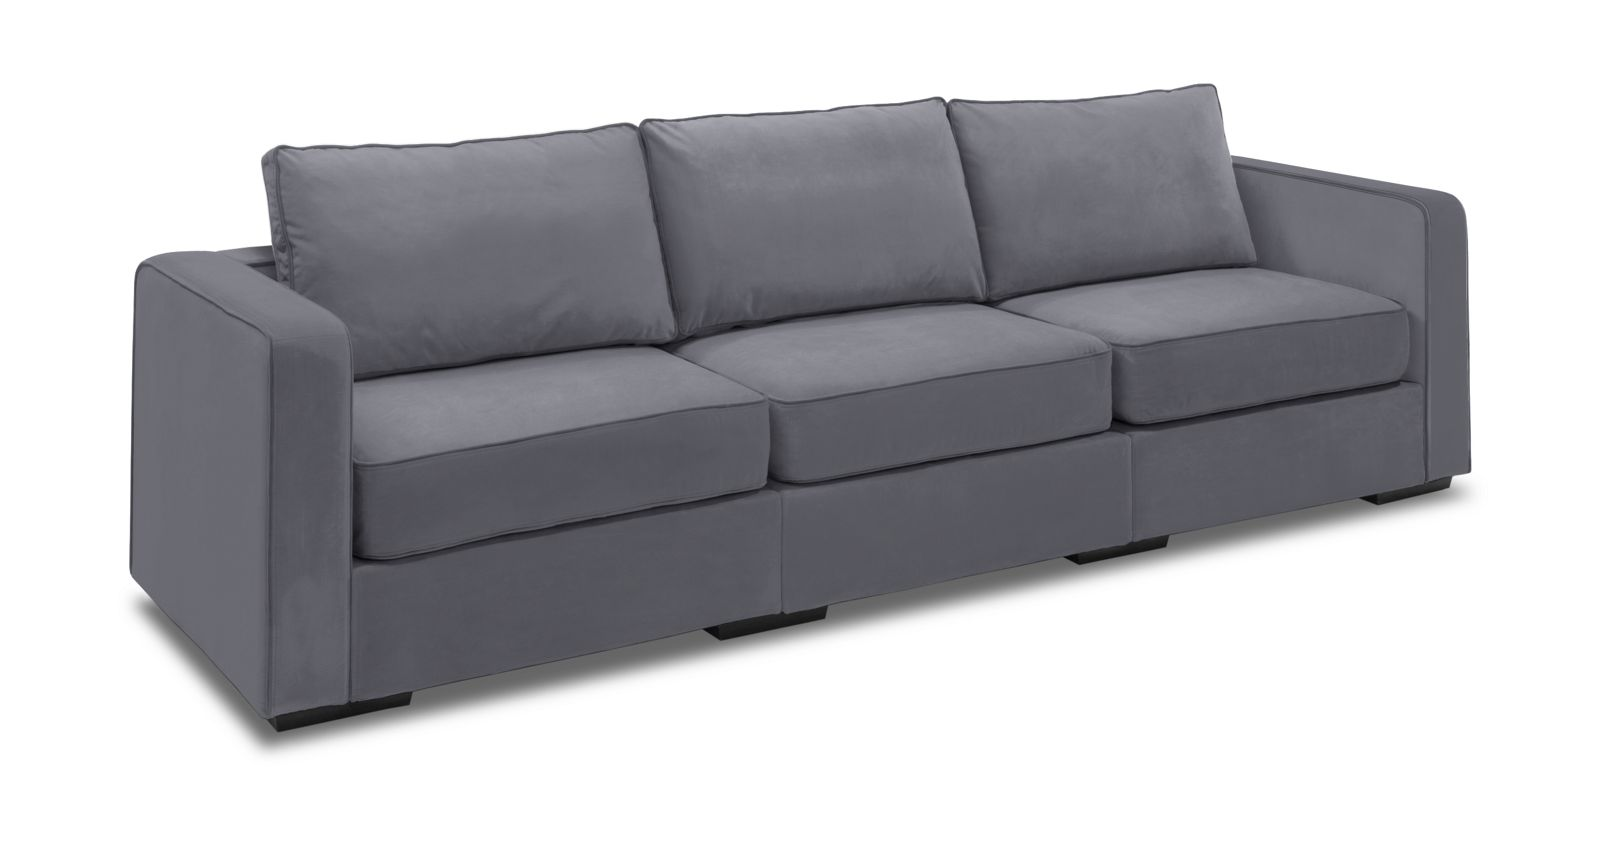 sectional sofas loveseats sofa size astonishing apartment and chaise curved with